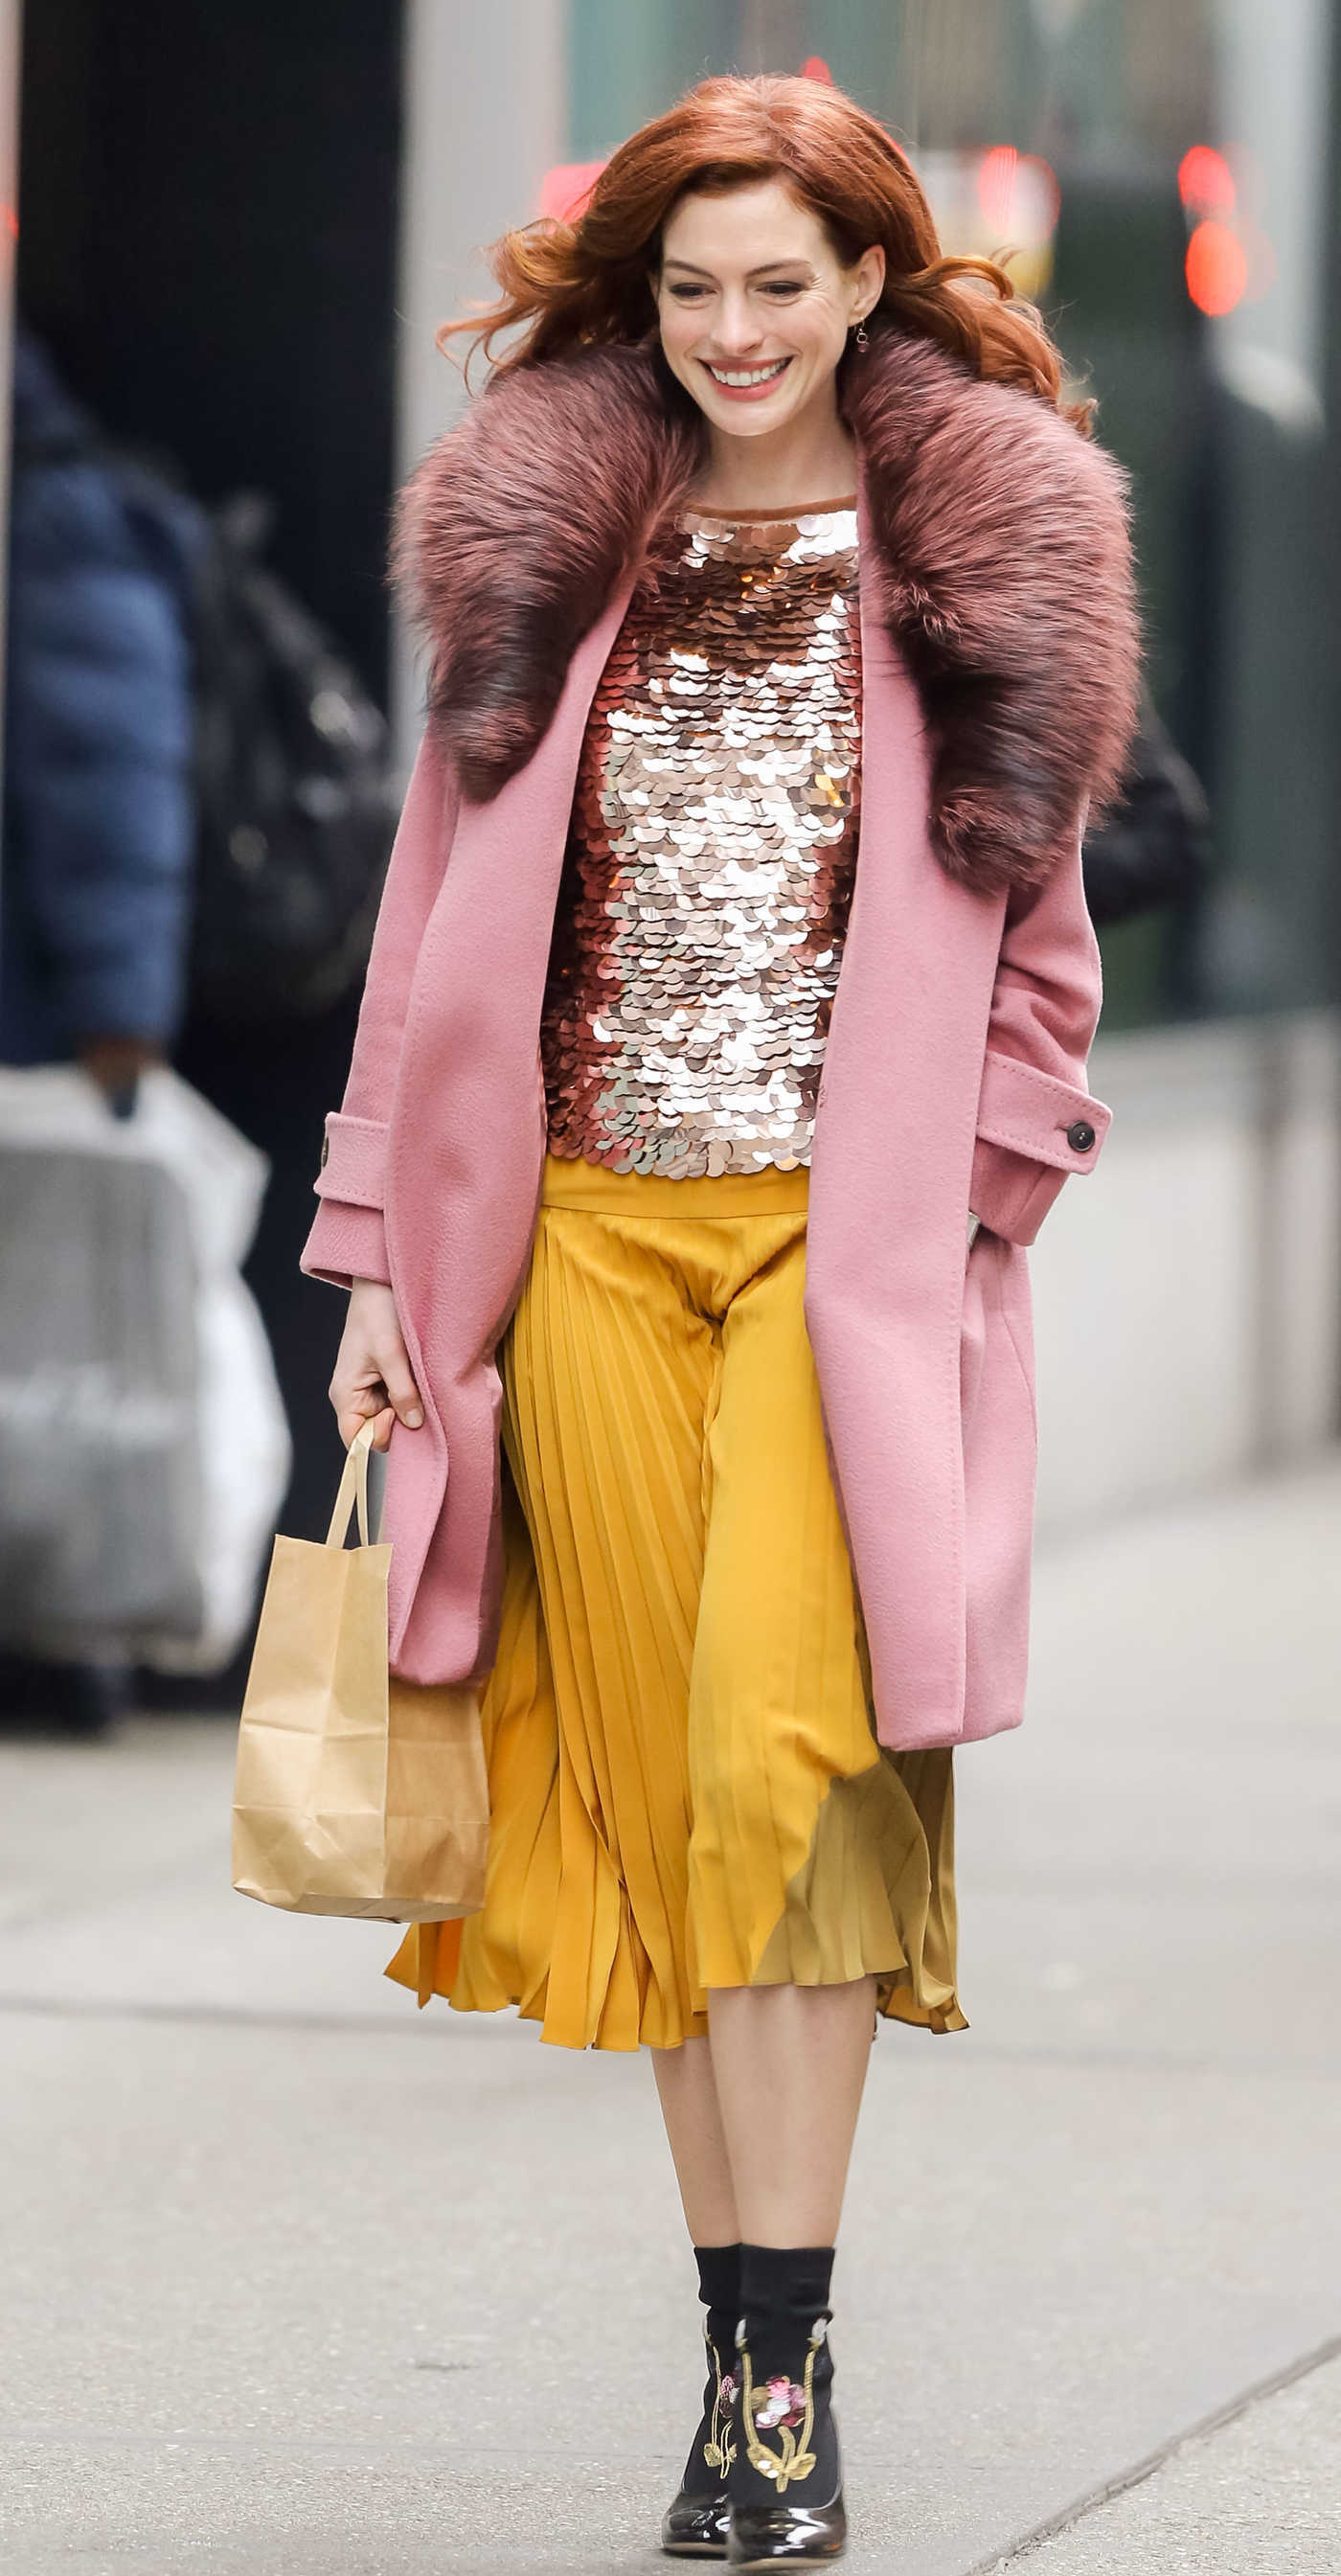 Anne Hathaway in a Pink Coat Was Seen Out in New York City 11/20/2018